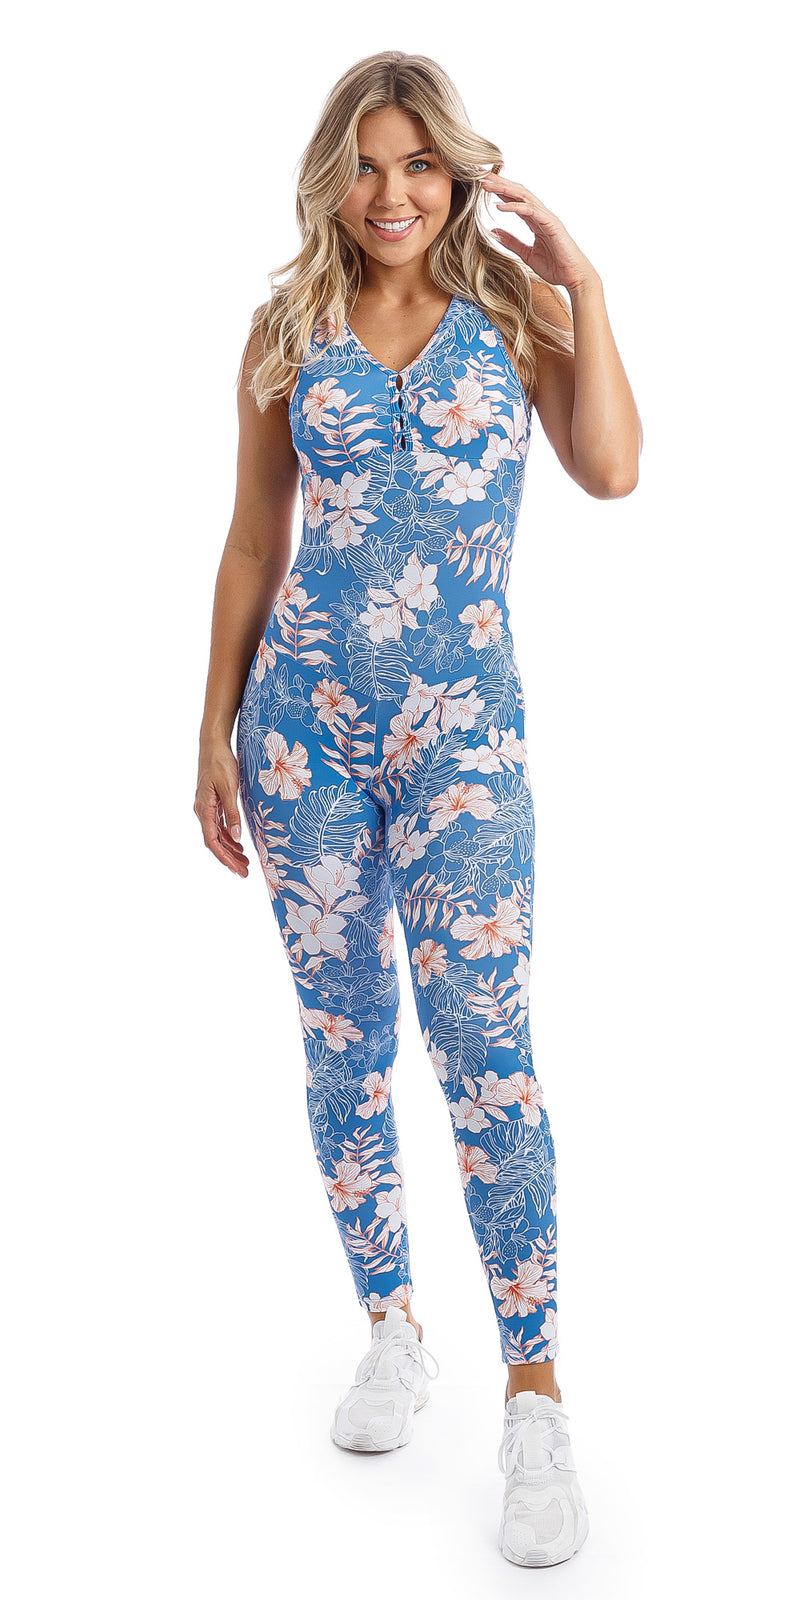 Lady in sleeveless blue, white and pink hibiscus flower print unitard with crisscross back detailing